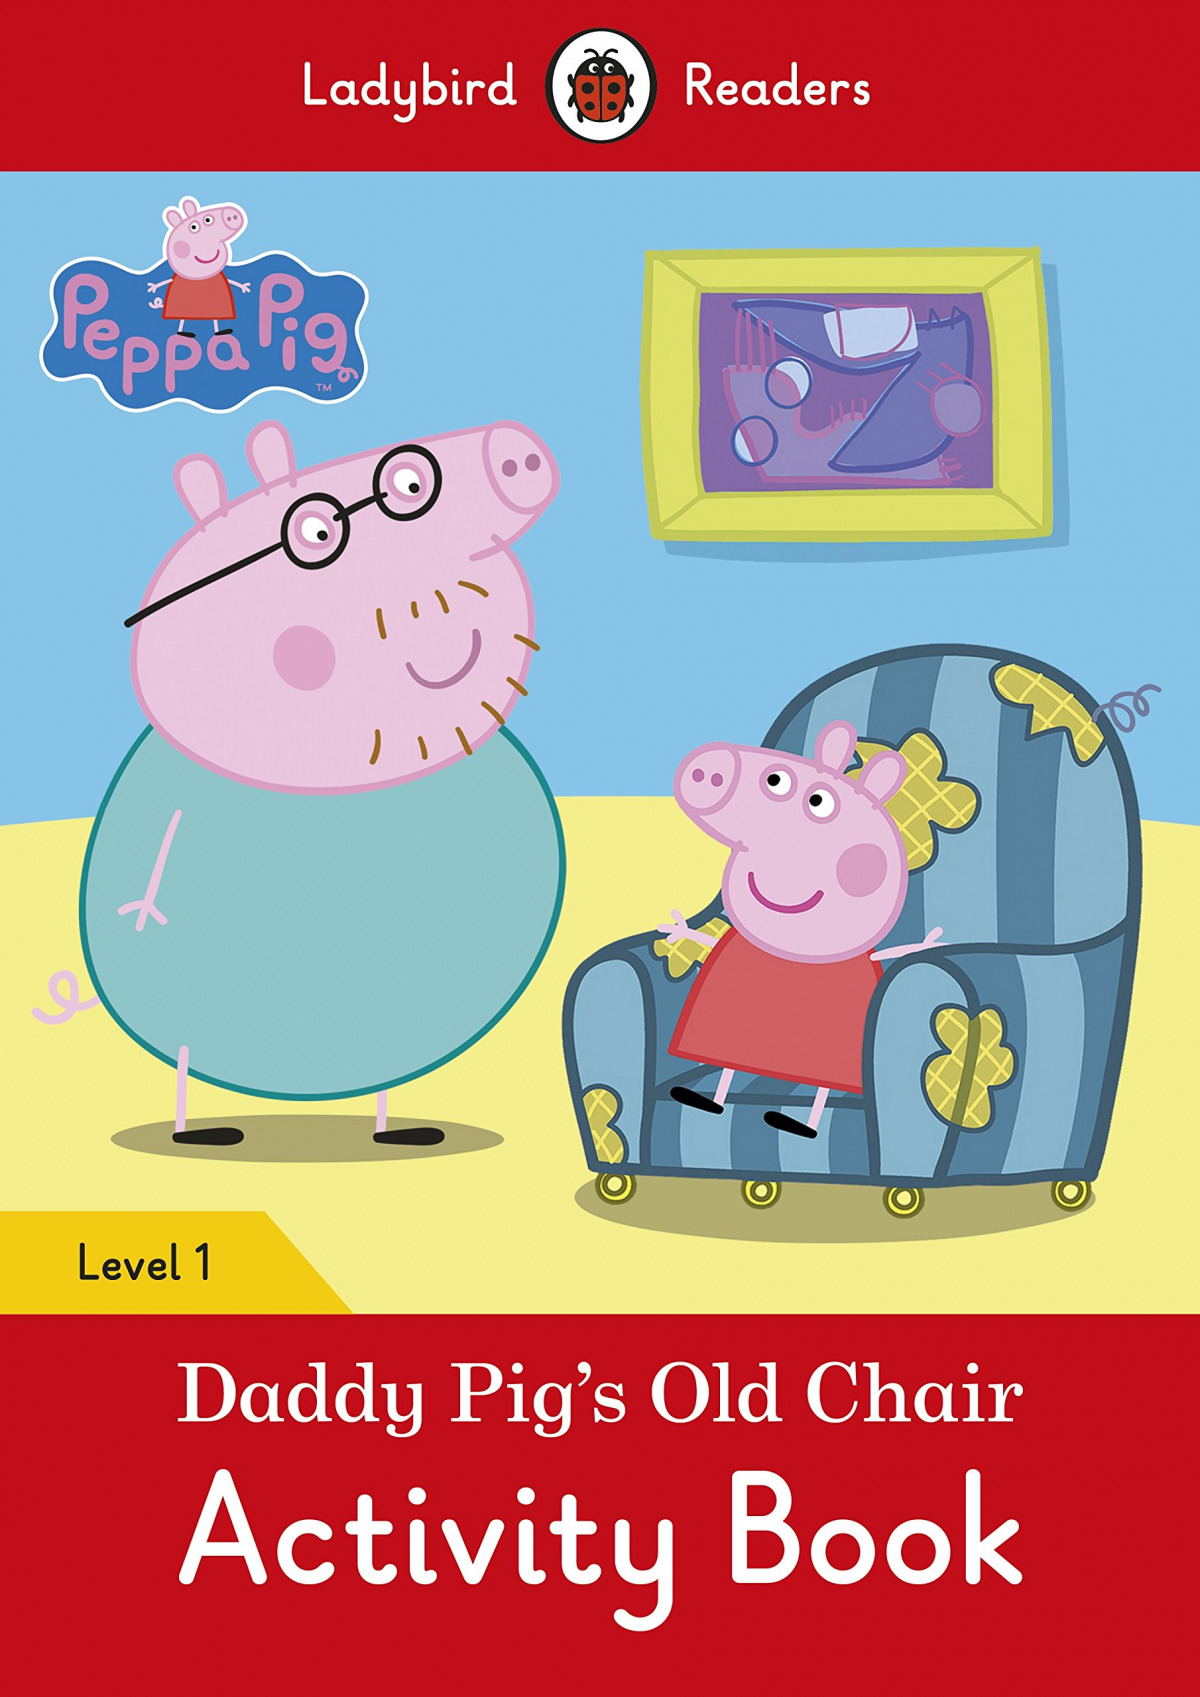 DADDY PIG'S OLD CHAIR. PEPPA PIG. ACTIVITY BOOK